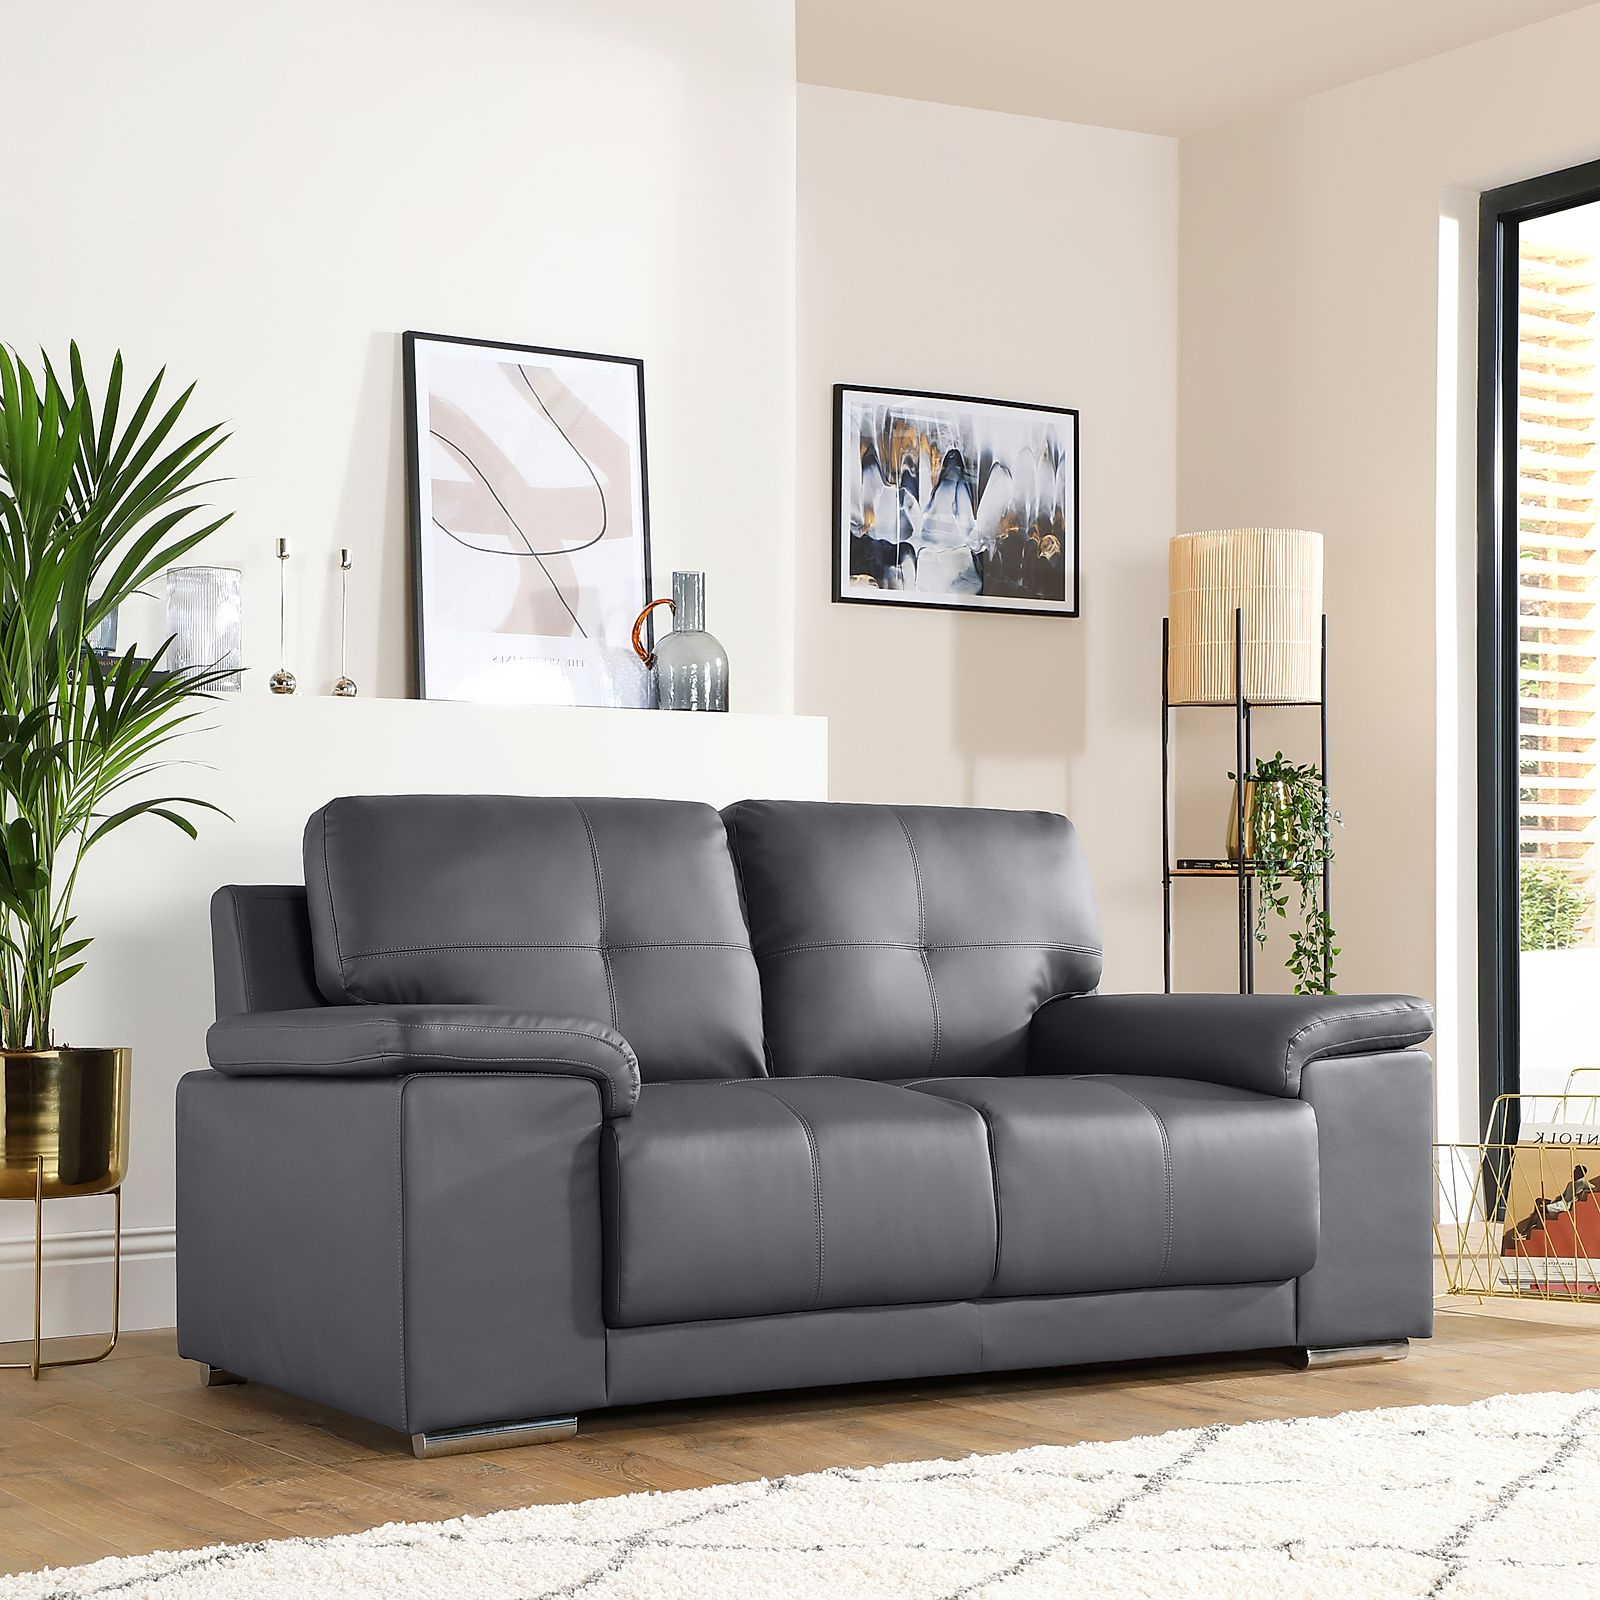 Furniture Choice With Regard To Current Gray Sofas (View 5 of 20)